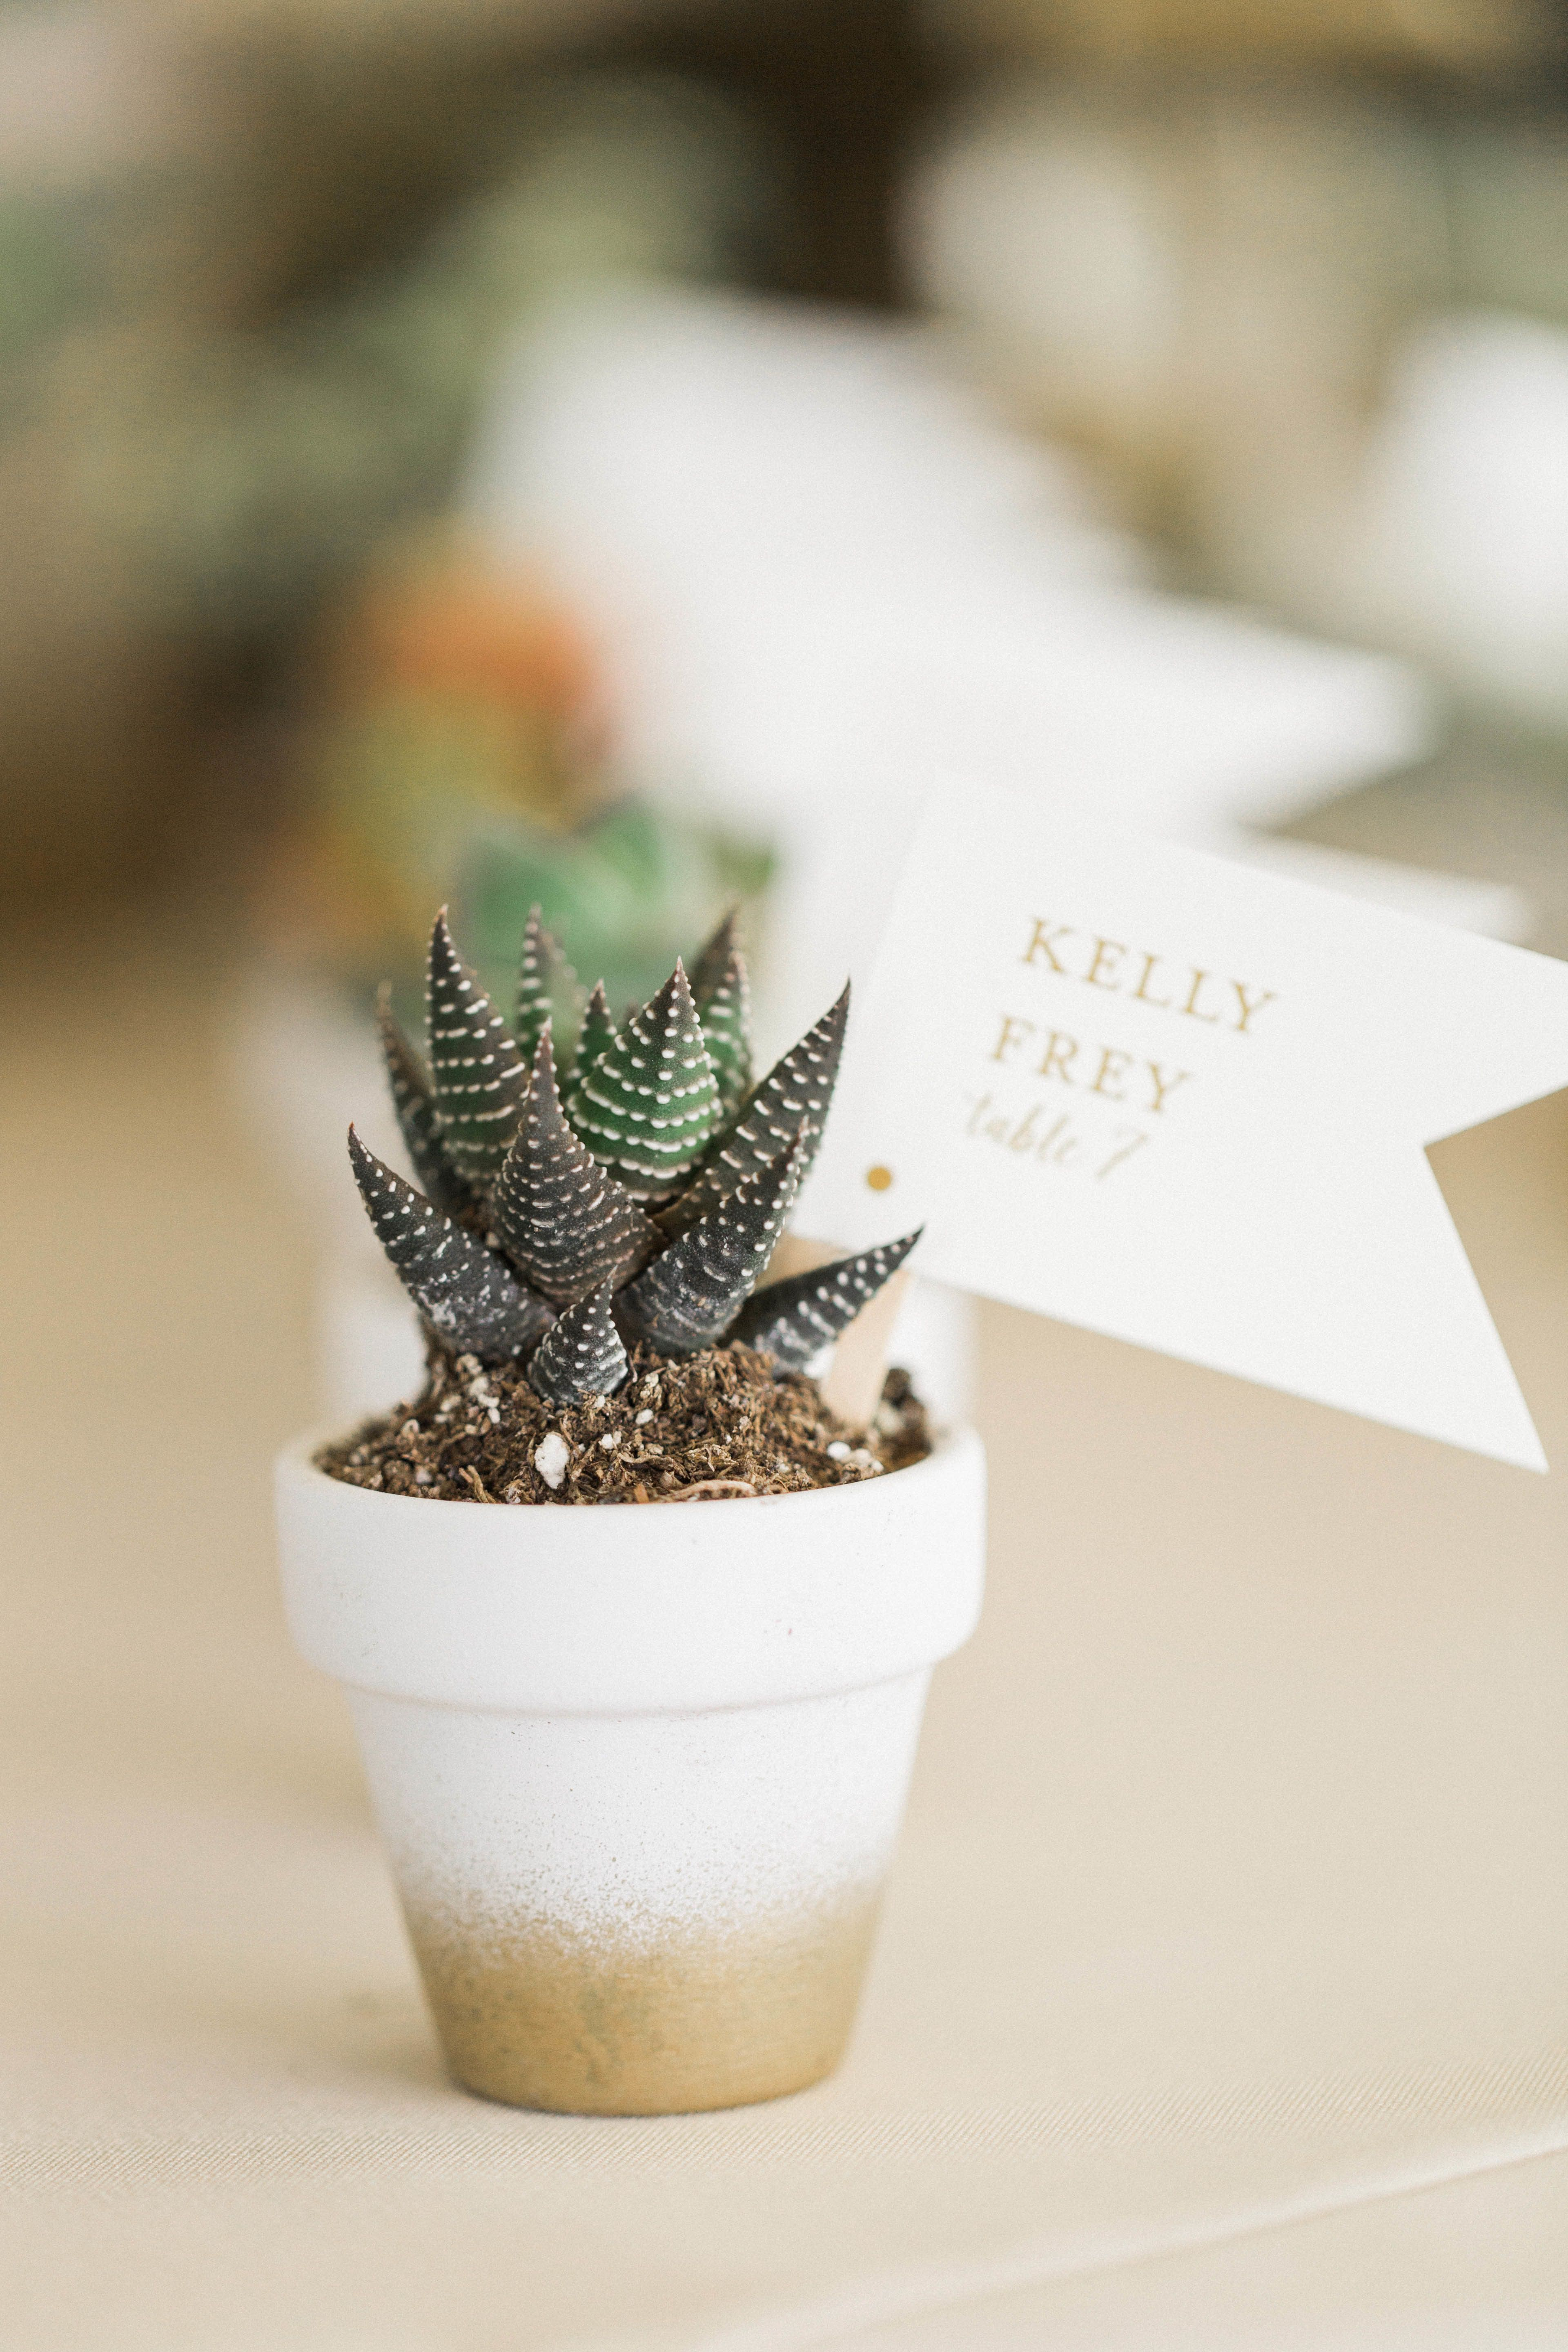 This is Our Idea of An At-Home Wedding! | St petersburg florida